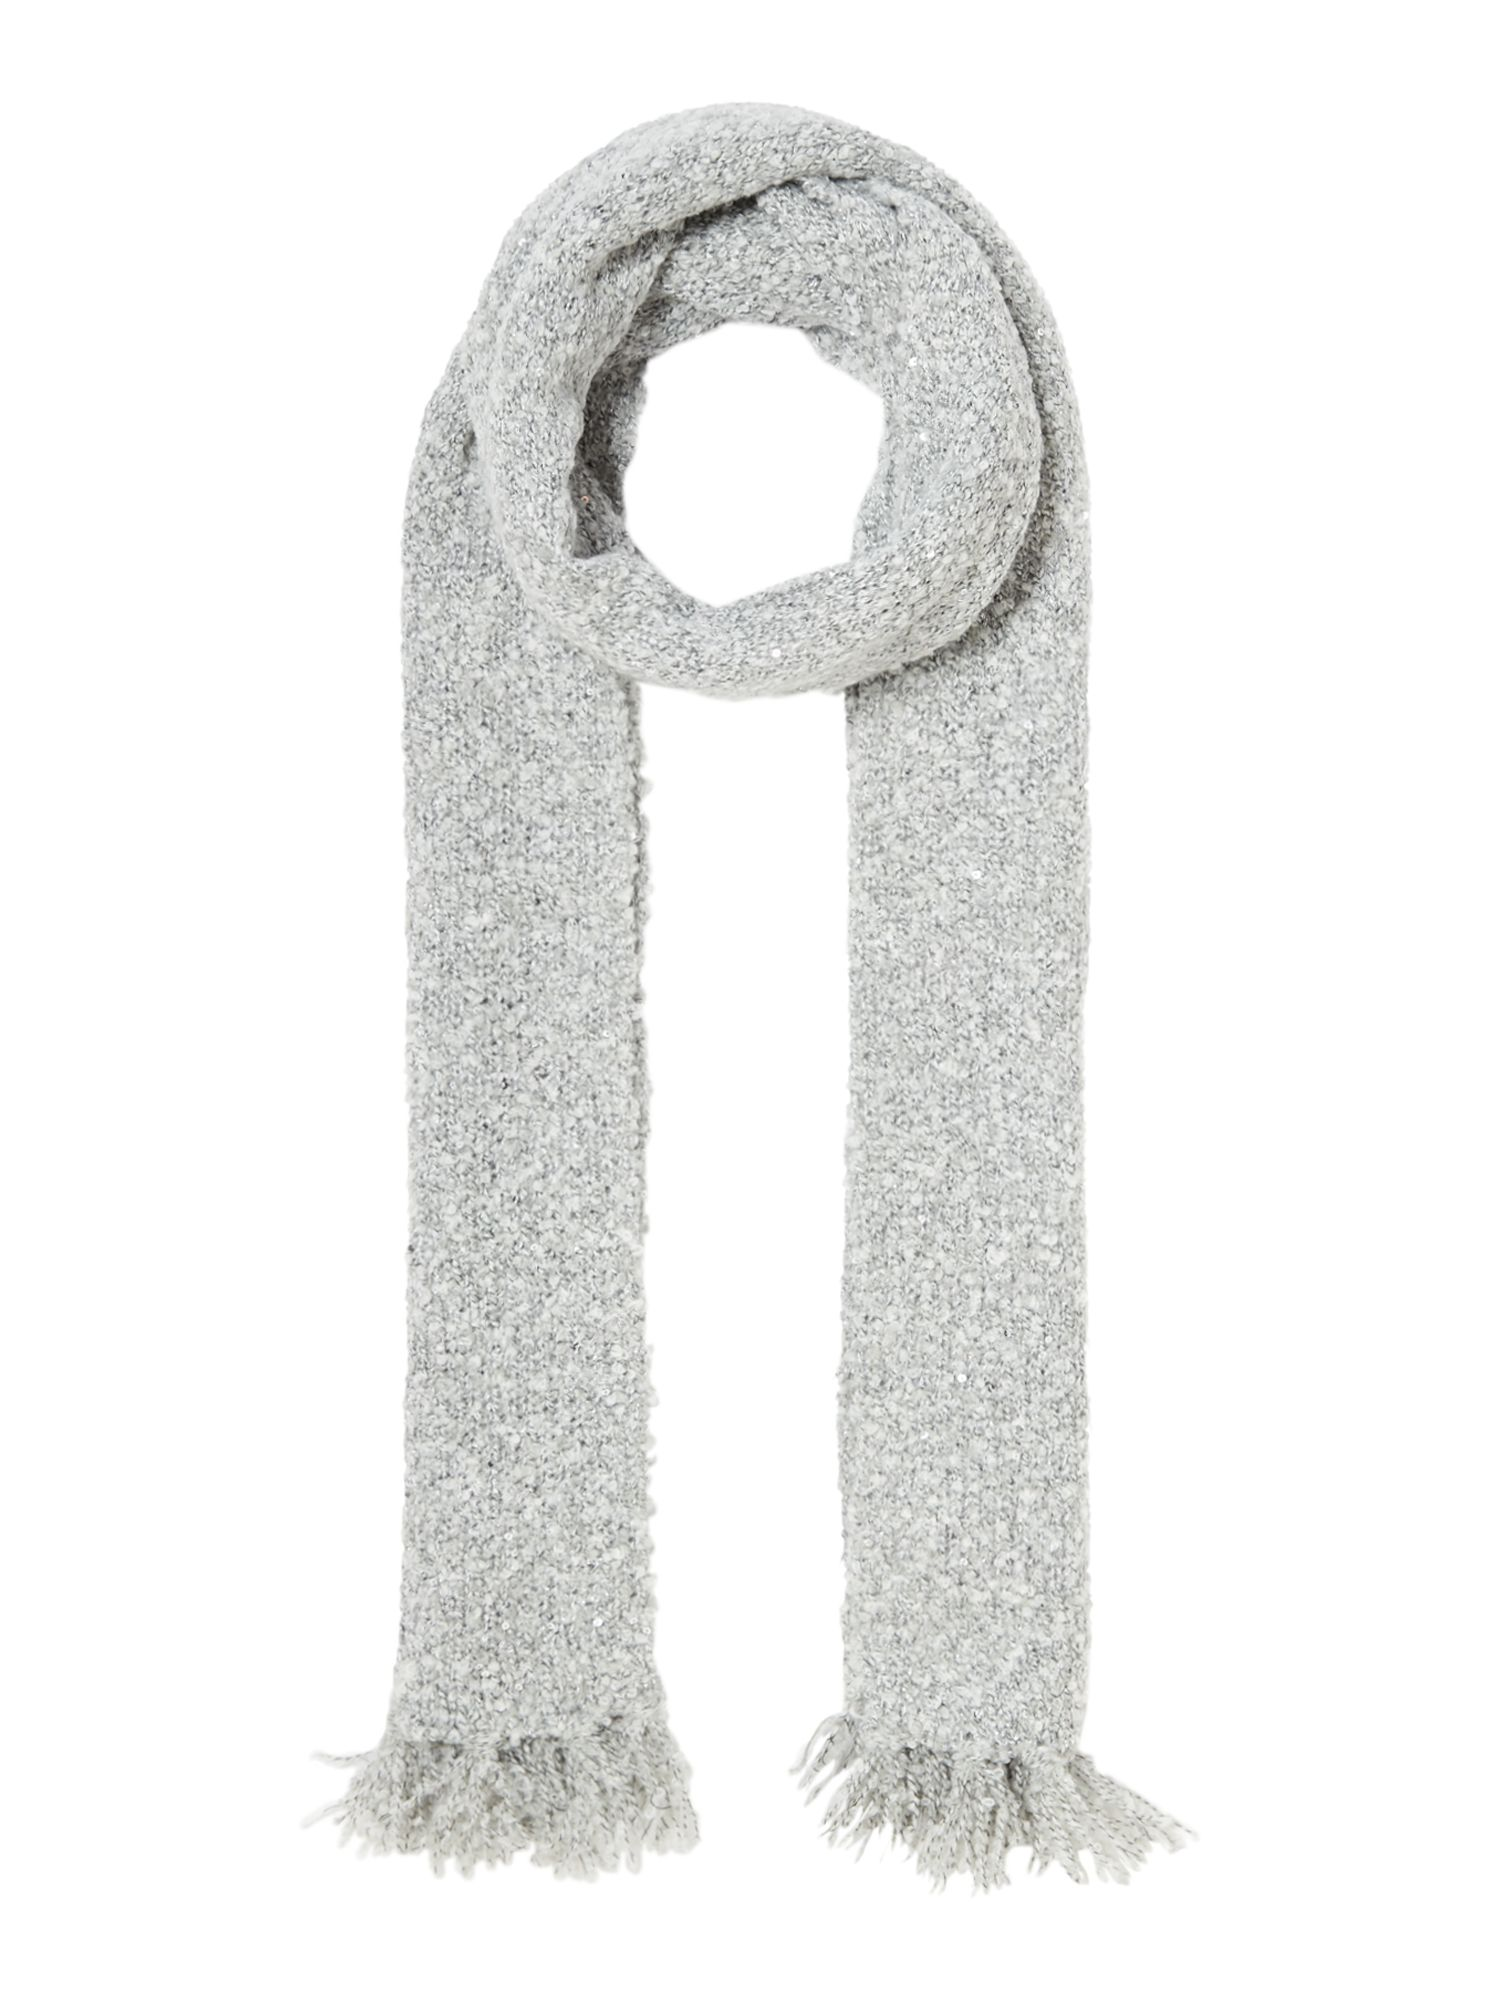 Photo of Maison de nimes sally sparkle scarf- mint